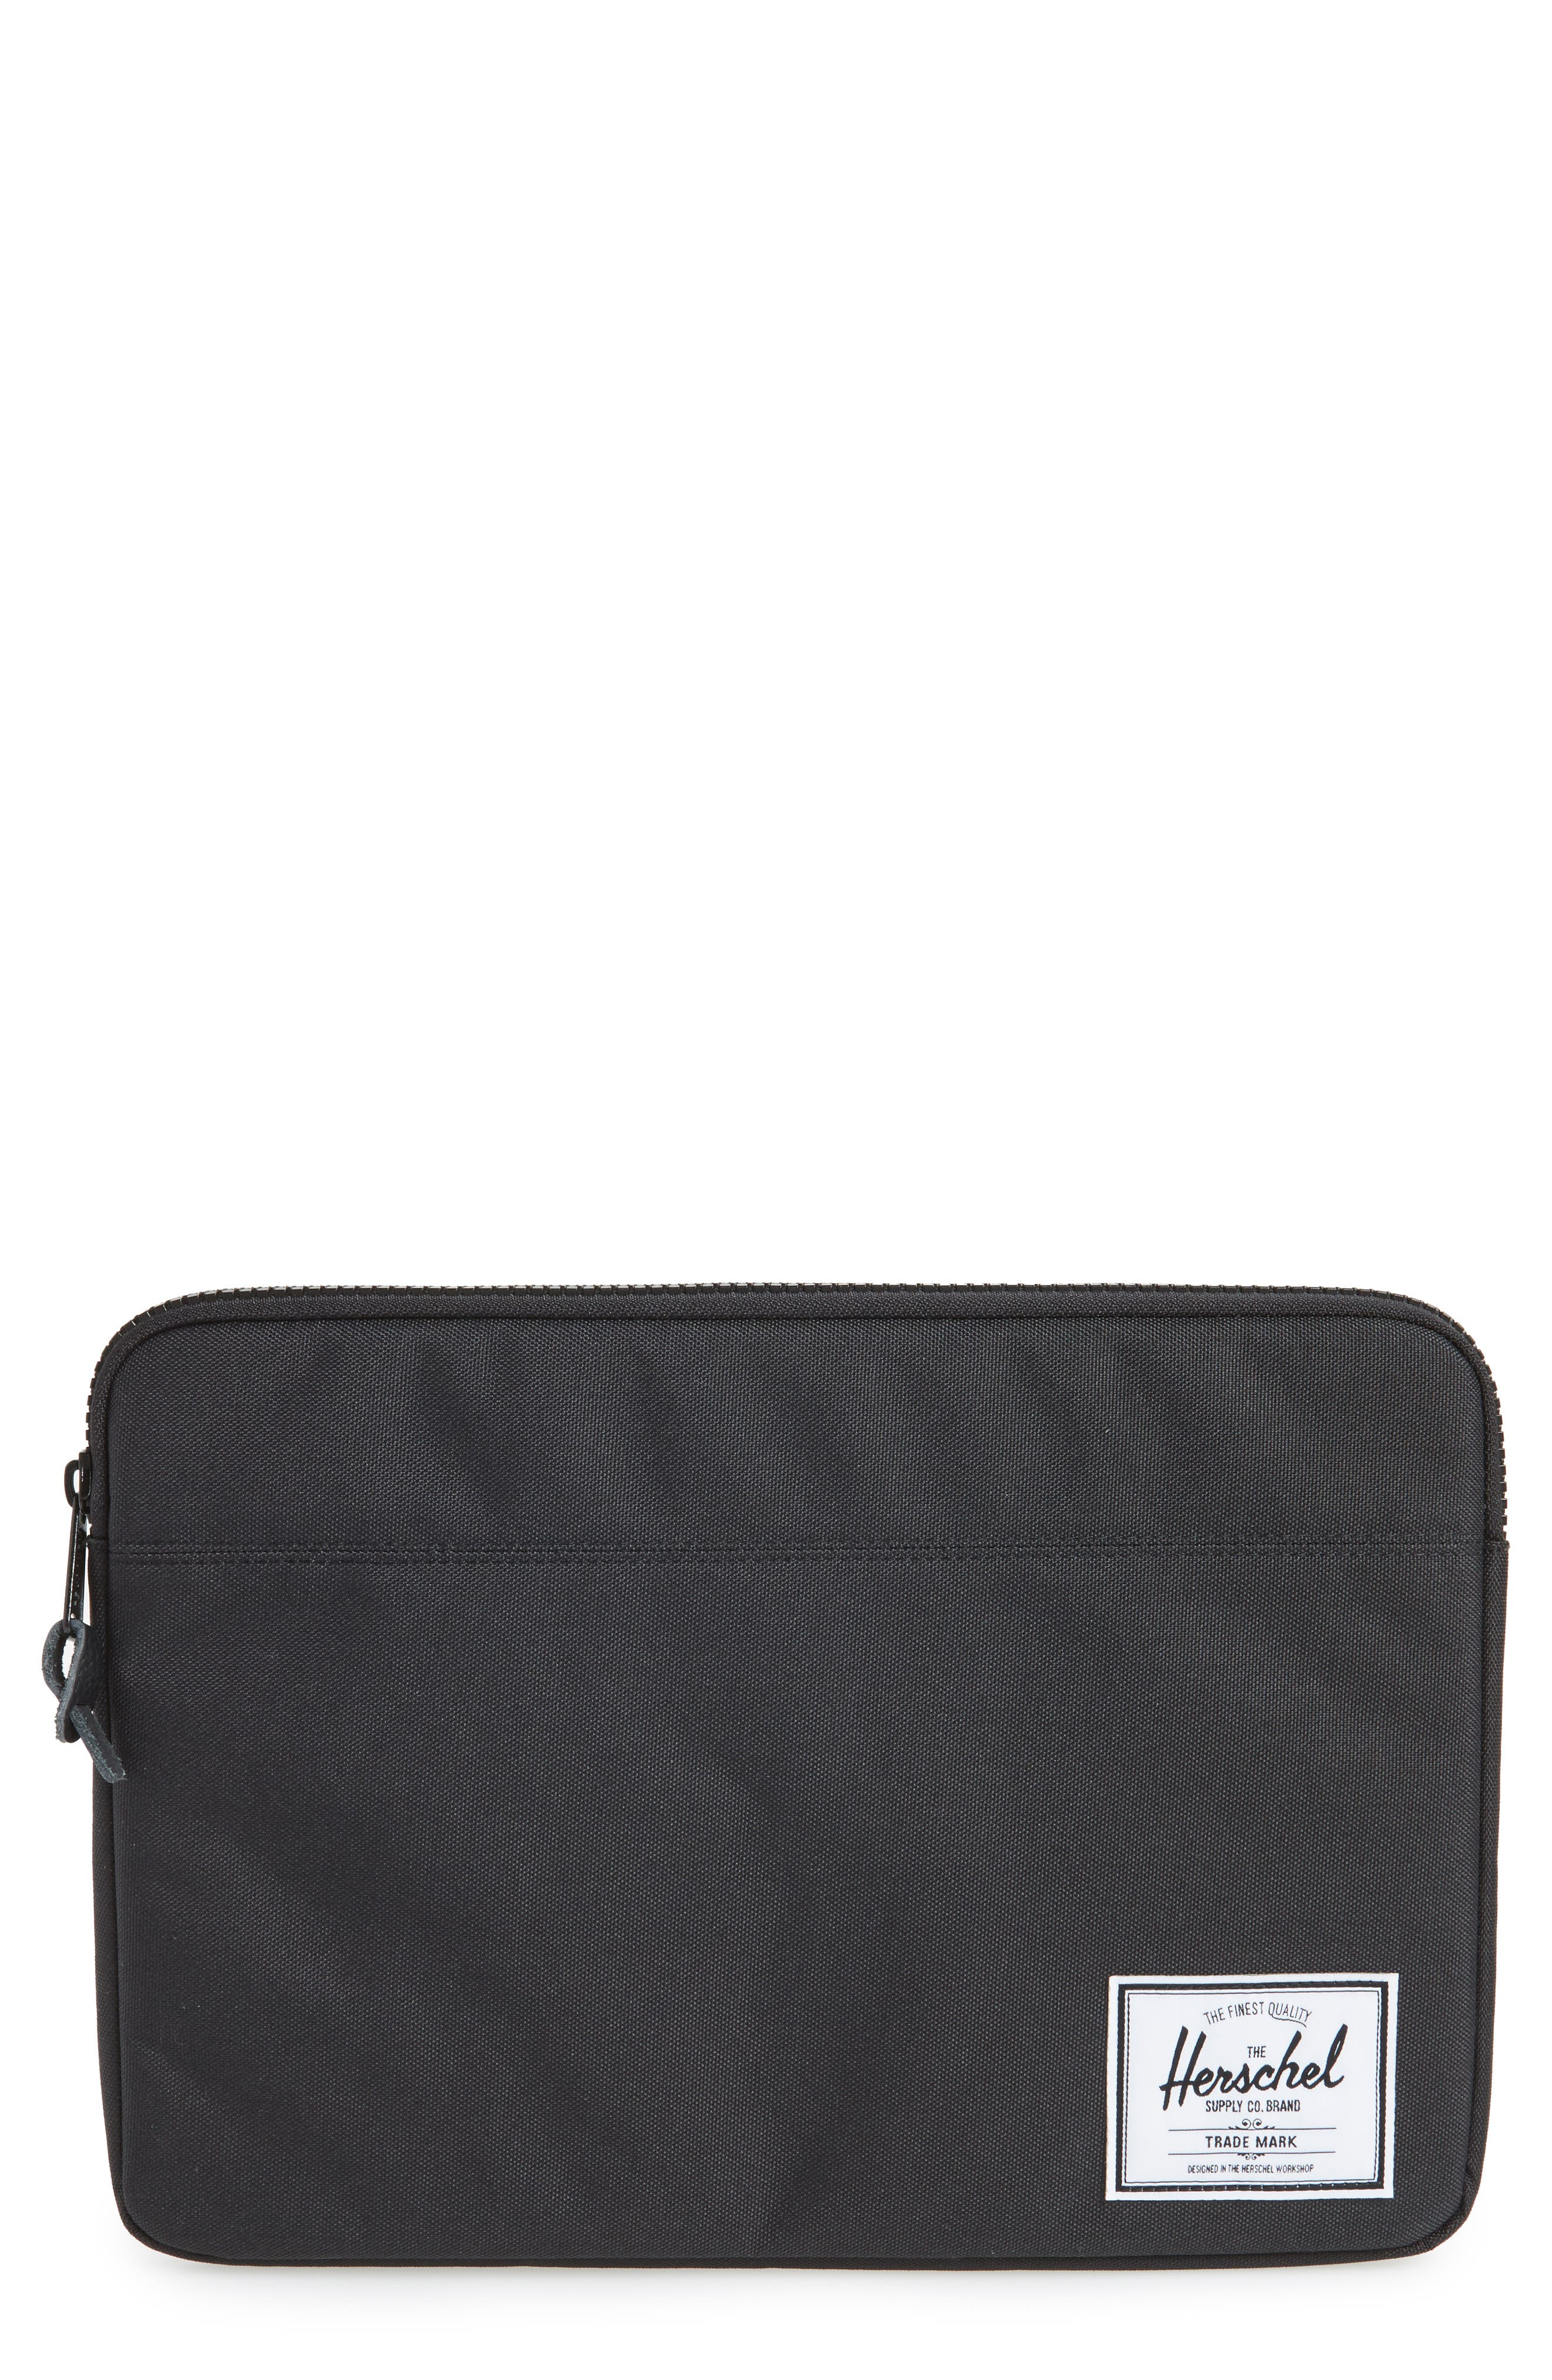 Herschel Supply Co. Anchor Laptop Sleeve